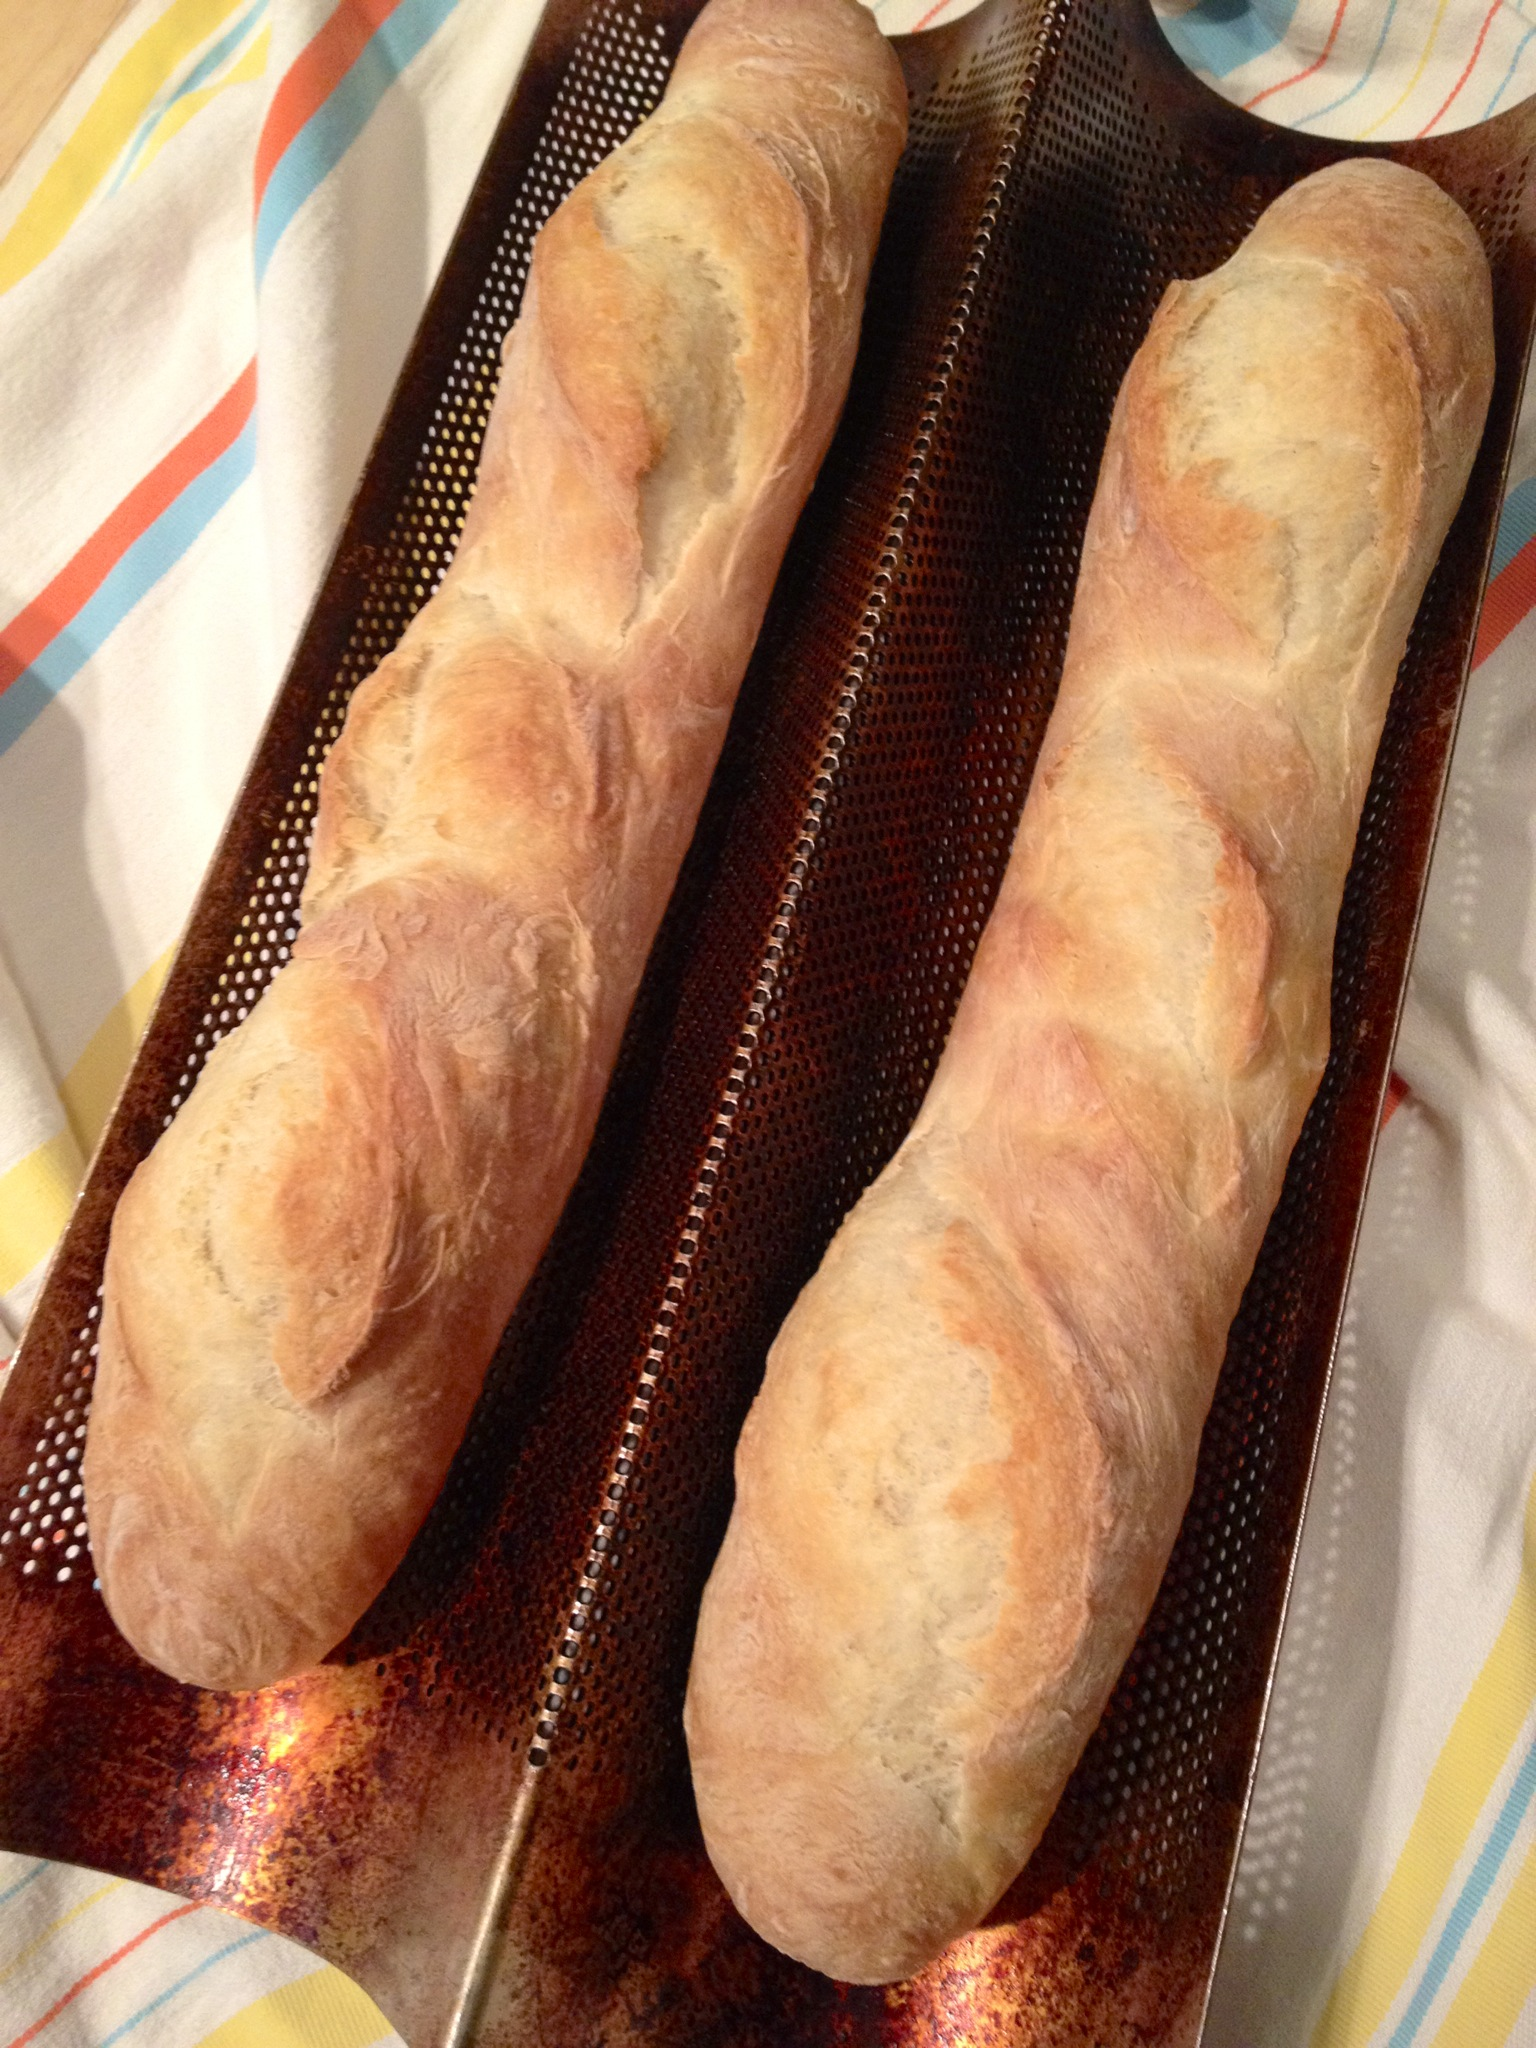 Cooked french bread baguettes fresh and hot right out of the oven.